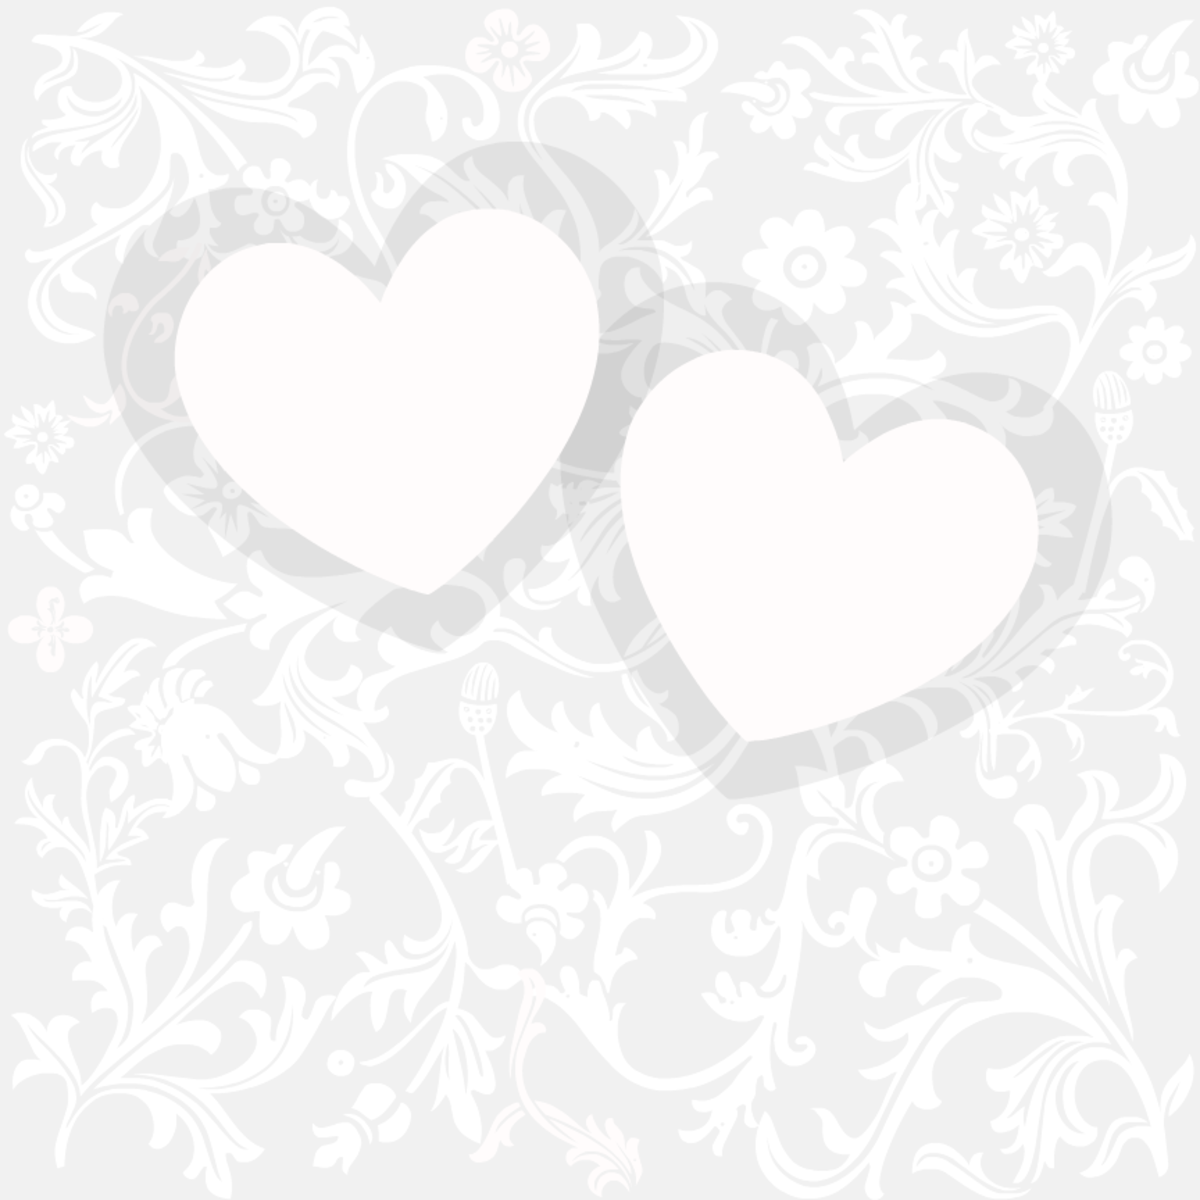 free wedding scrapbook clipart - photo #44